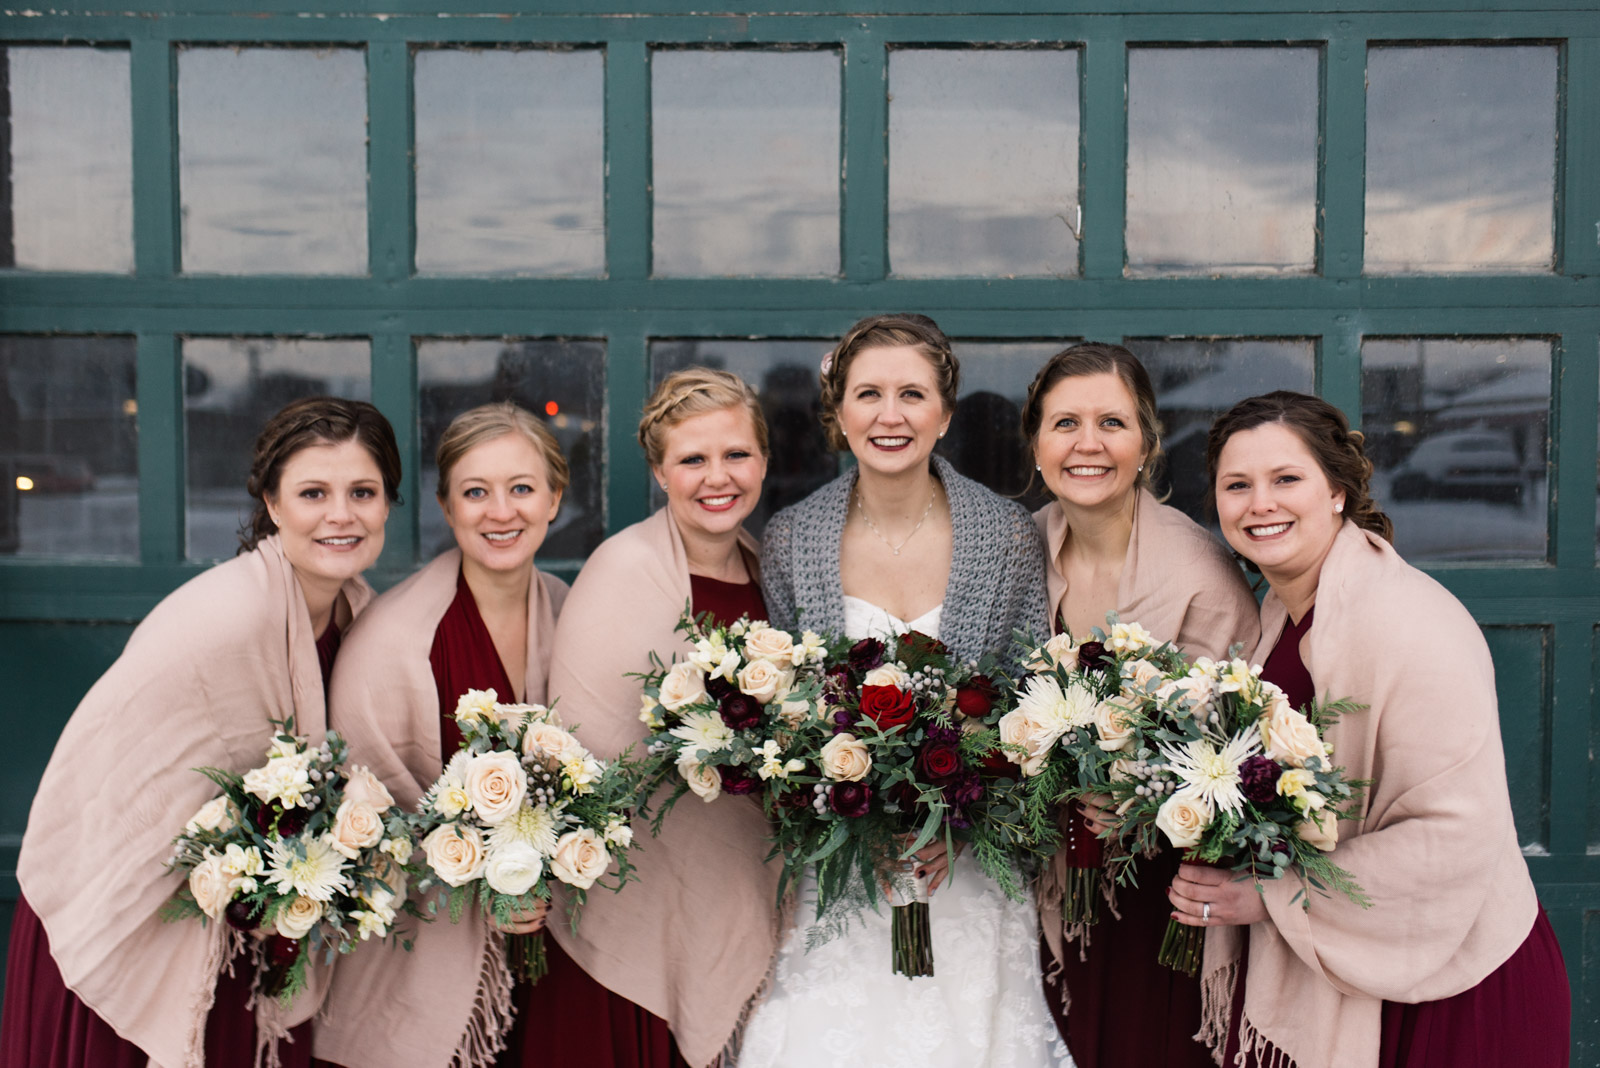 bride and bridesmaids holding flowers in front of green door cedar rapids newbo wedding